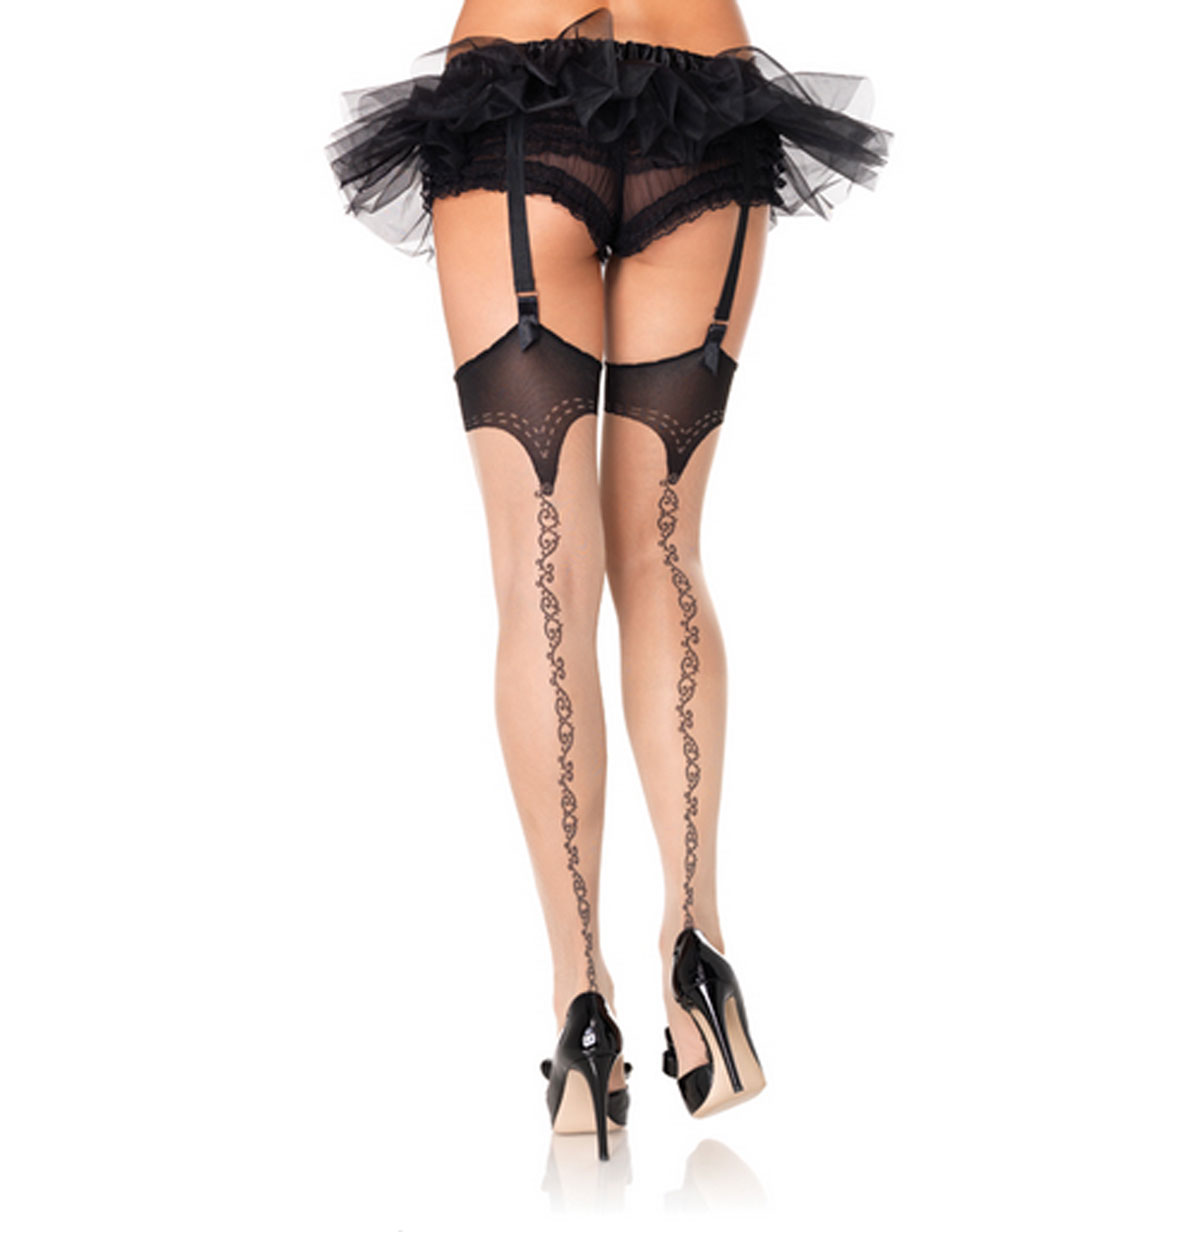 Spandex Sheer Stockings with Stitching Print Detail and Scroll Backseam